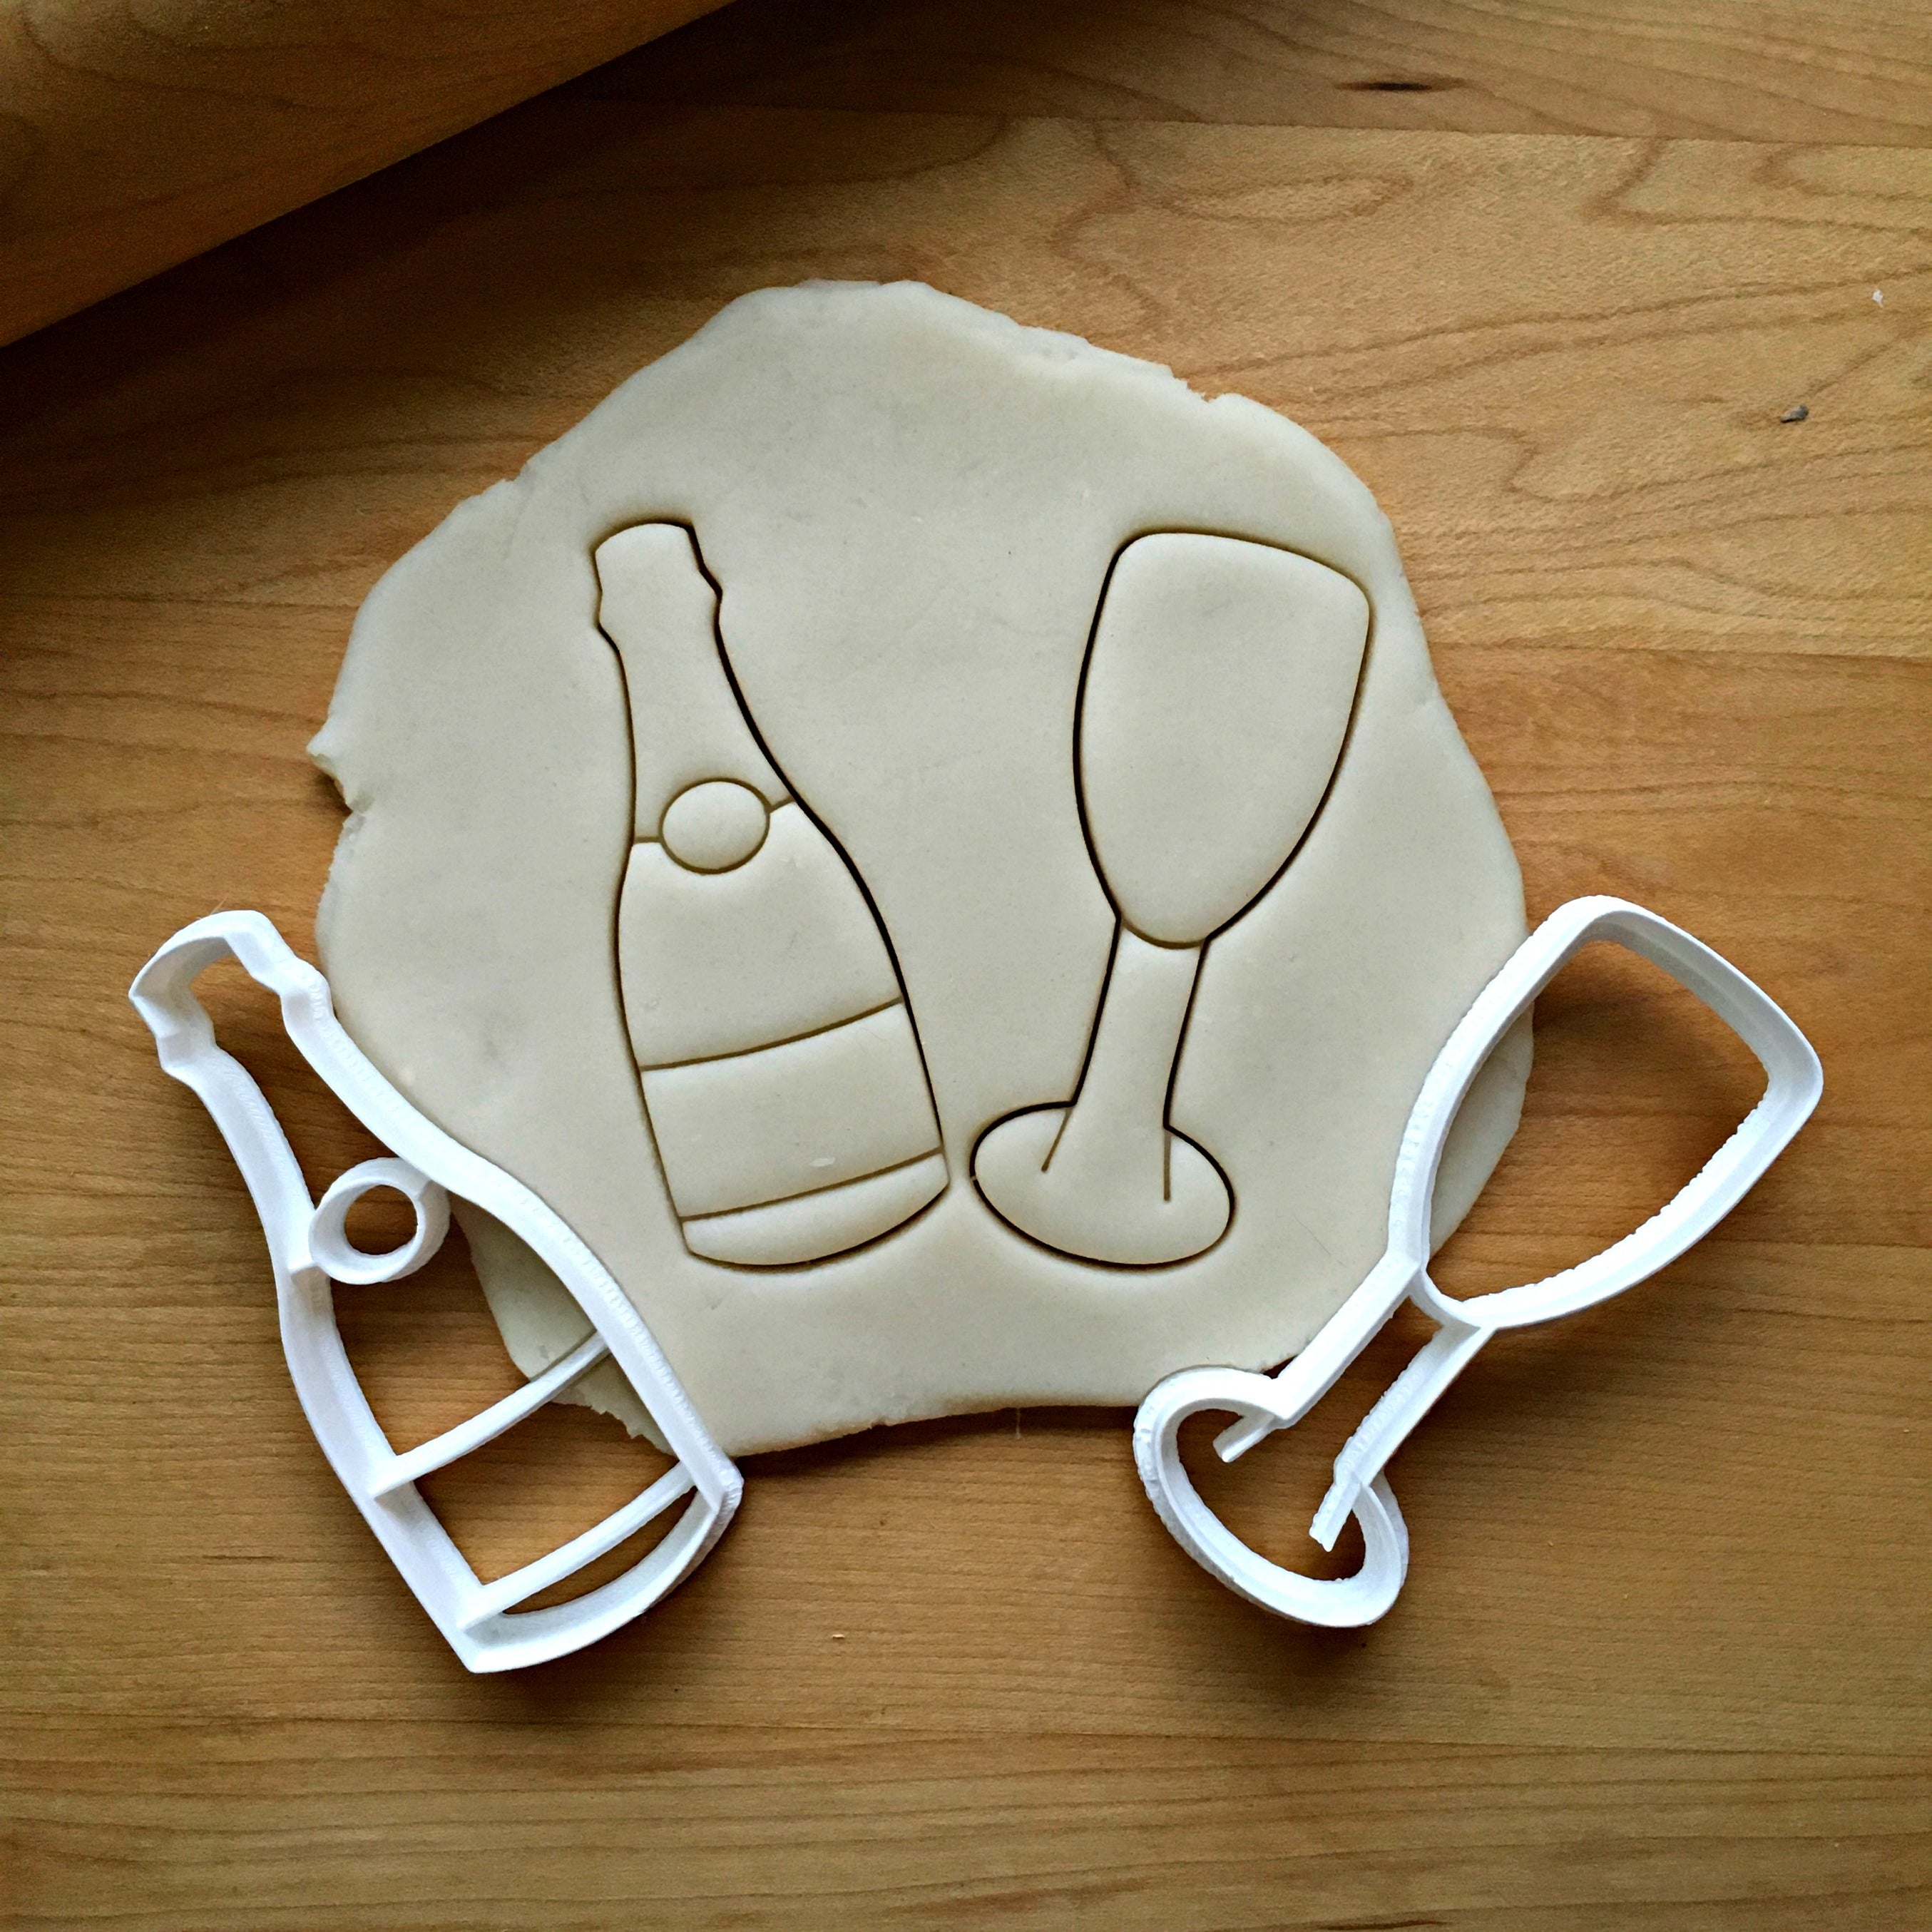 Champagne Glass and Bottle Cookie Cutter Set/Dishwasher Safe